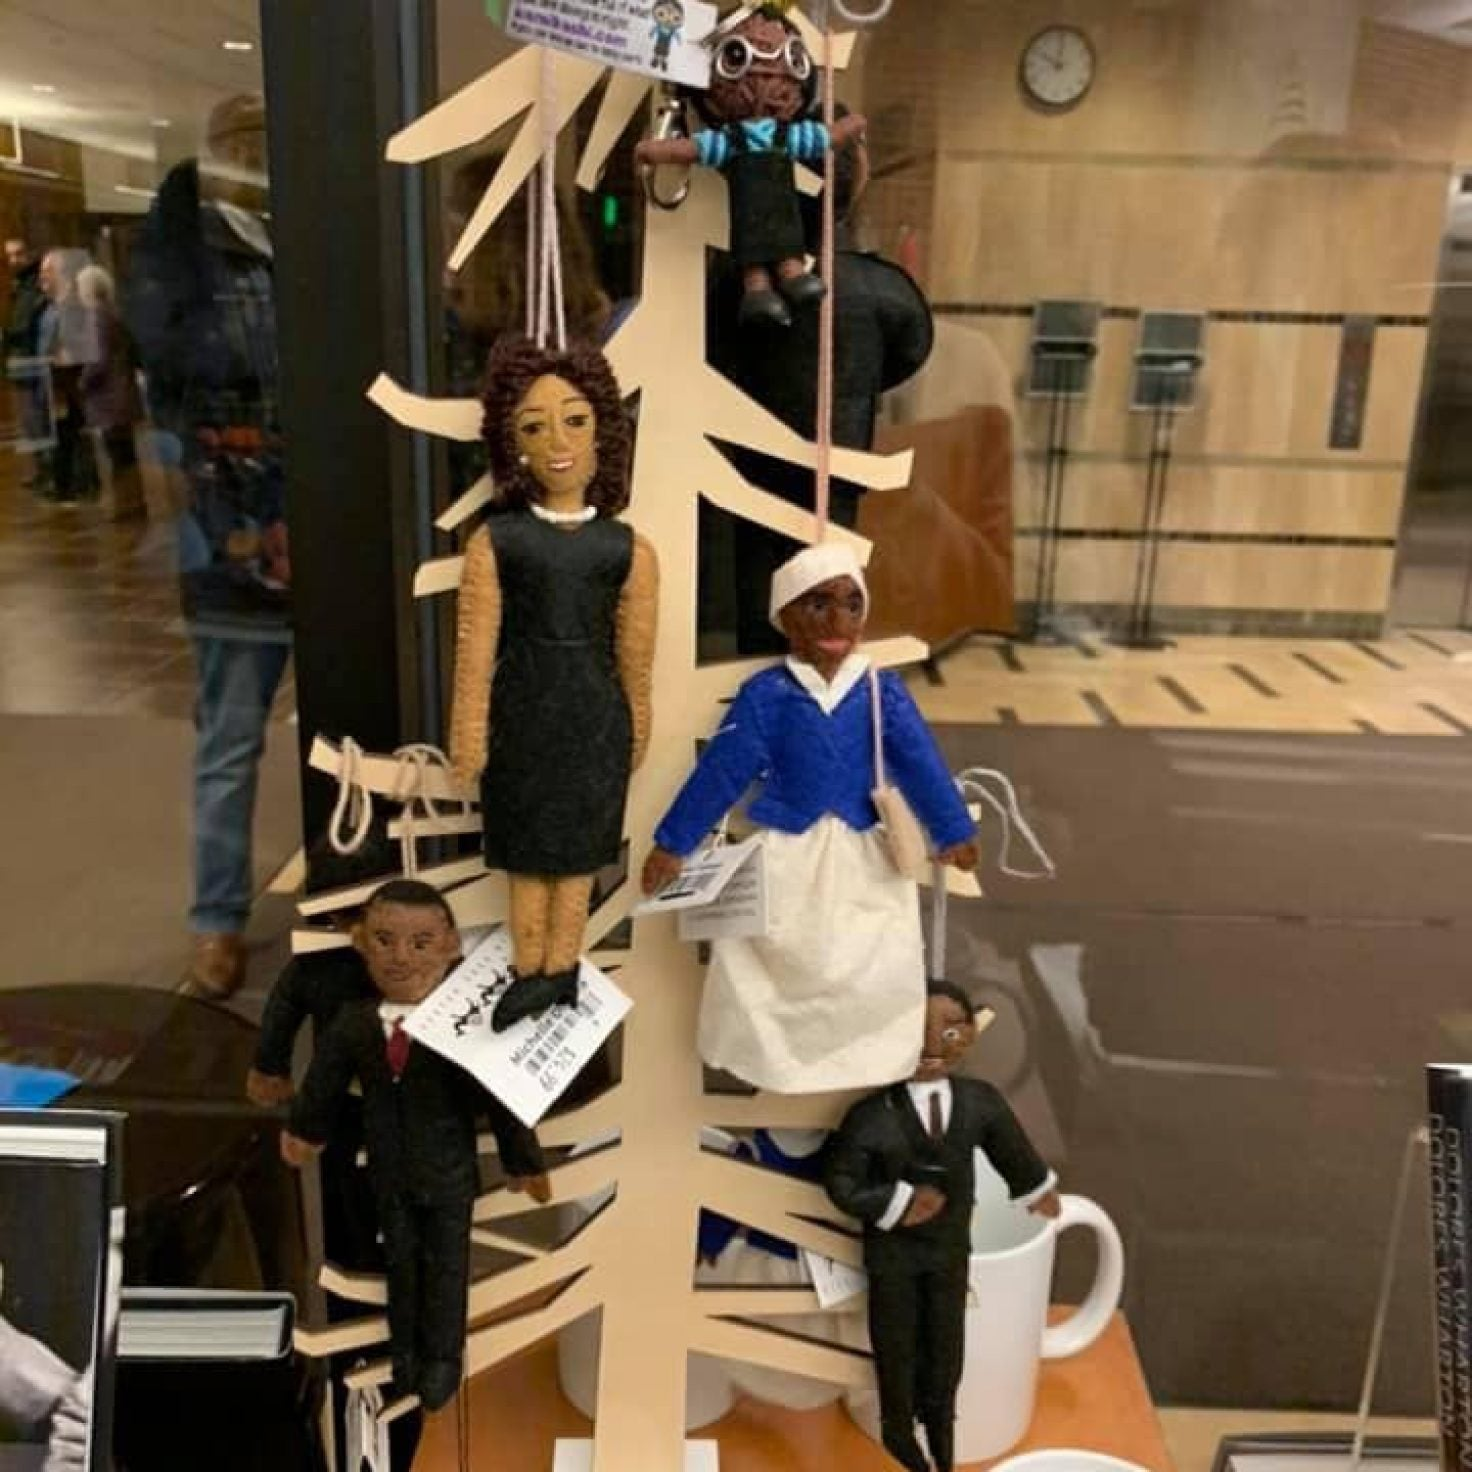 Michigan State University Apologizes For Hanging Historical Black Figures From Tree In Black History Month Display